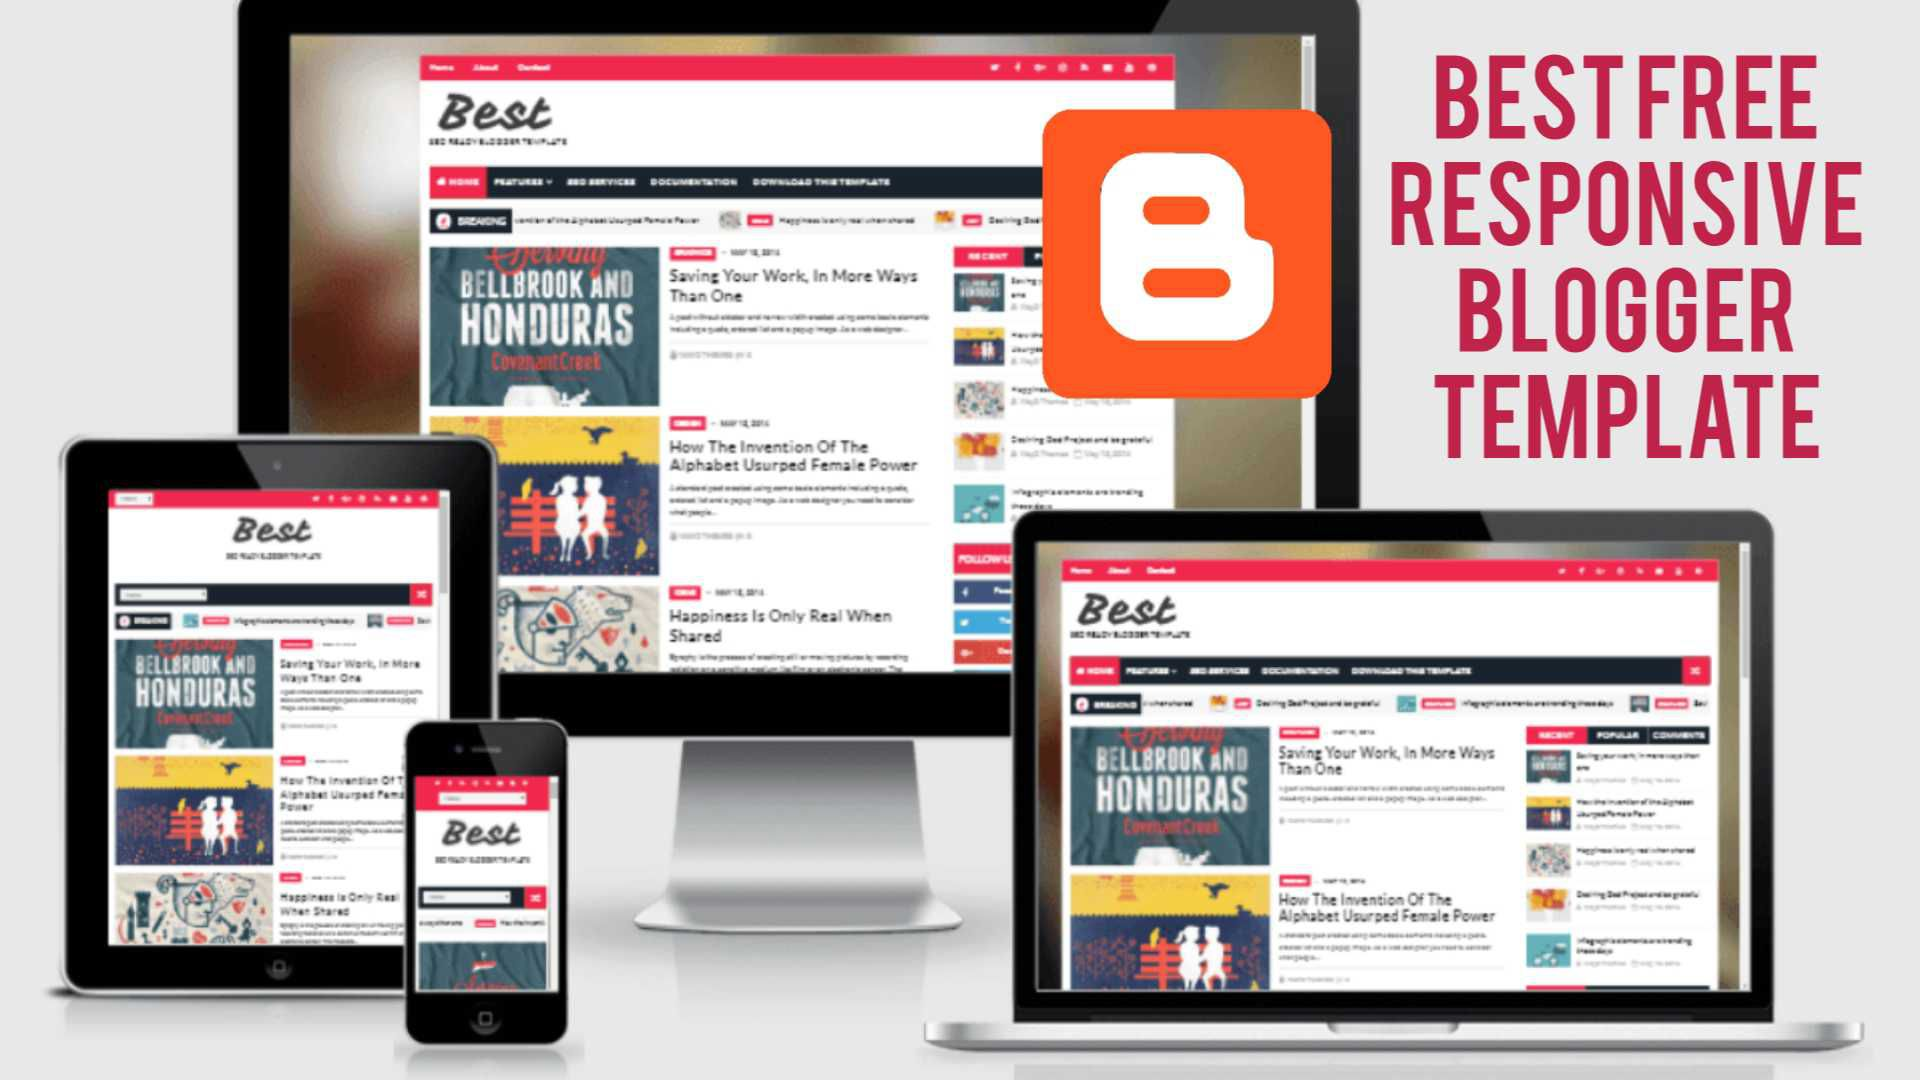 002 Archaicawful Best Free Responsive Blogger Template Inspiration  Templates Mobile Friendly Top 2019Full